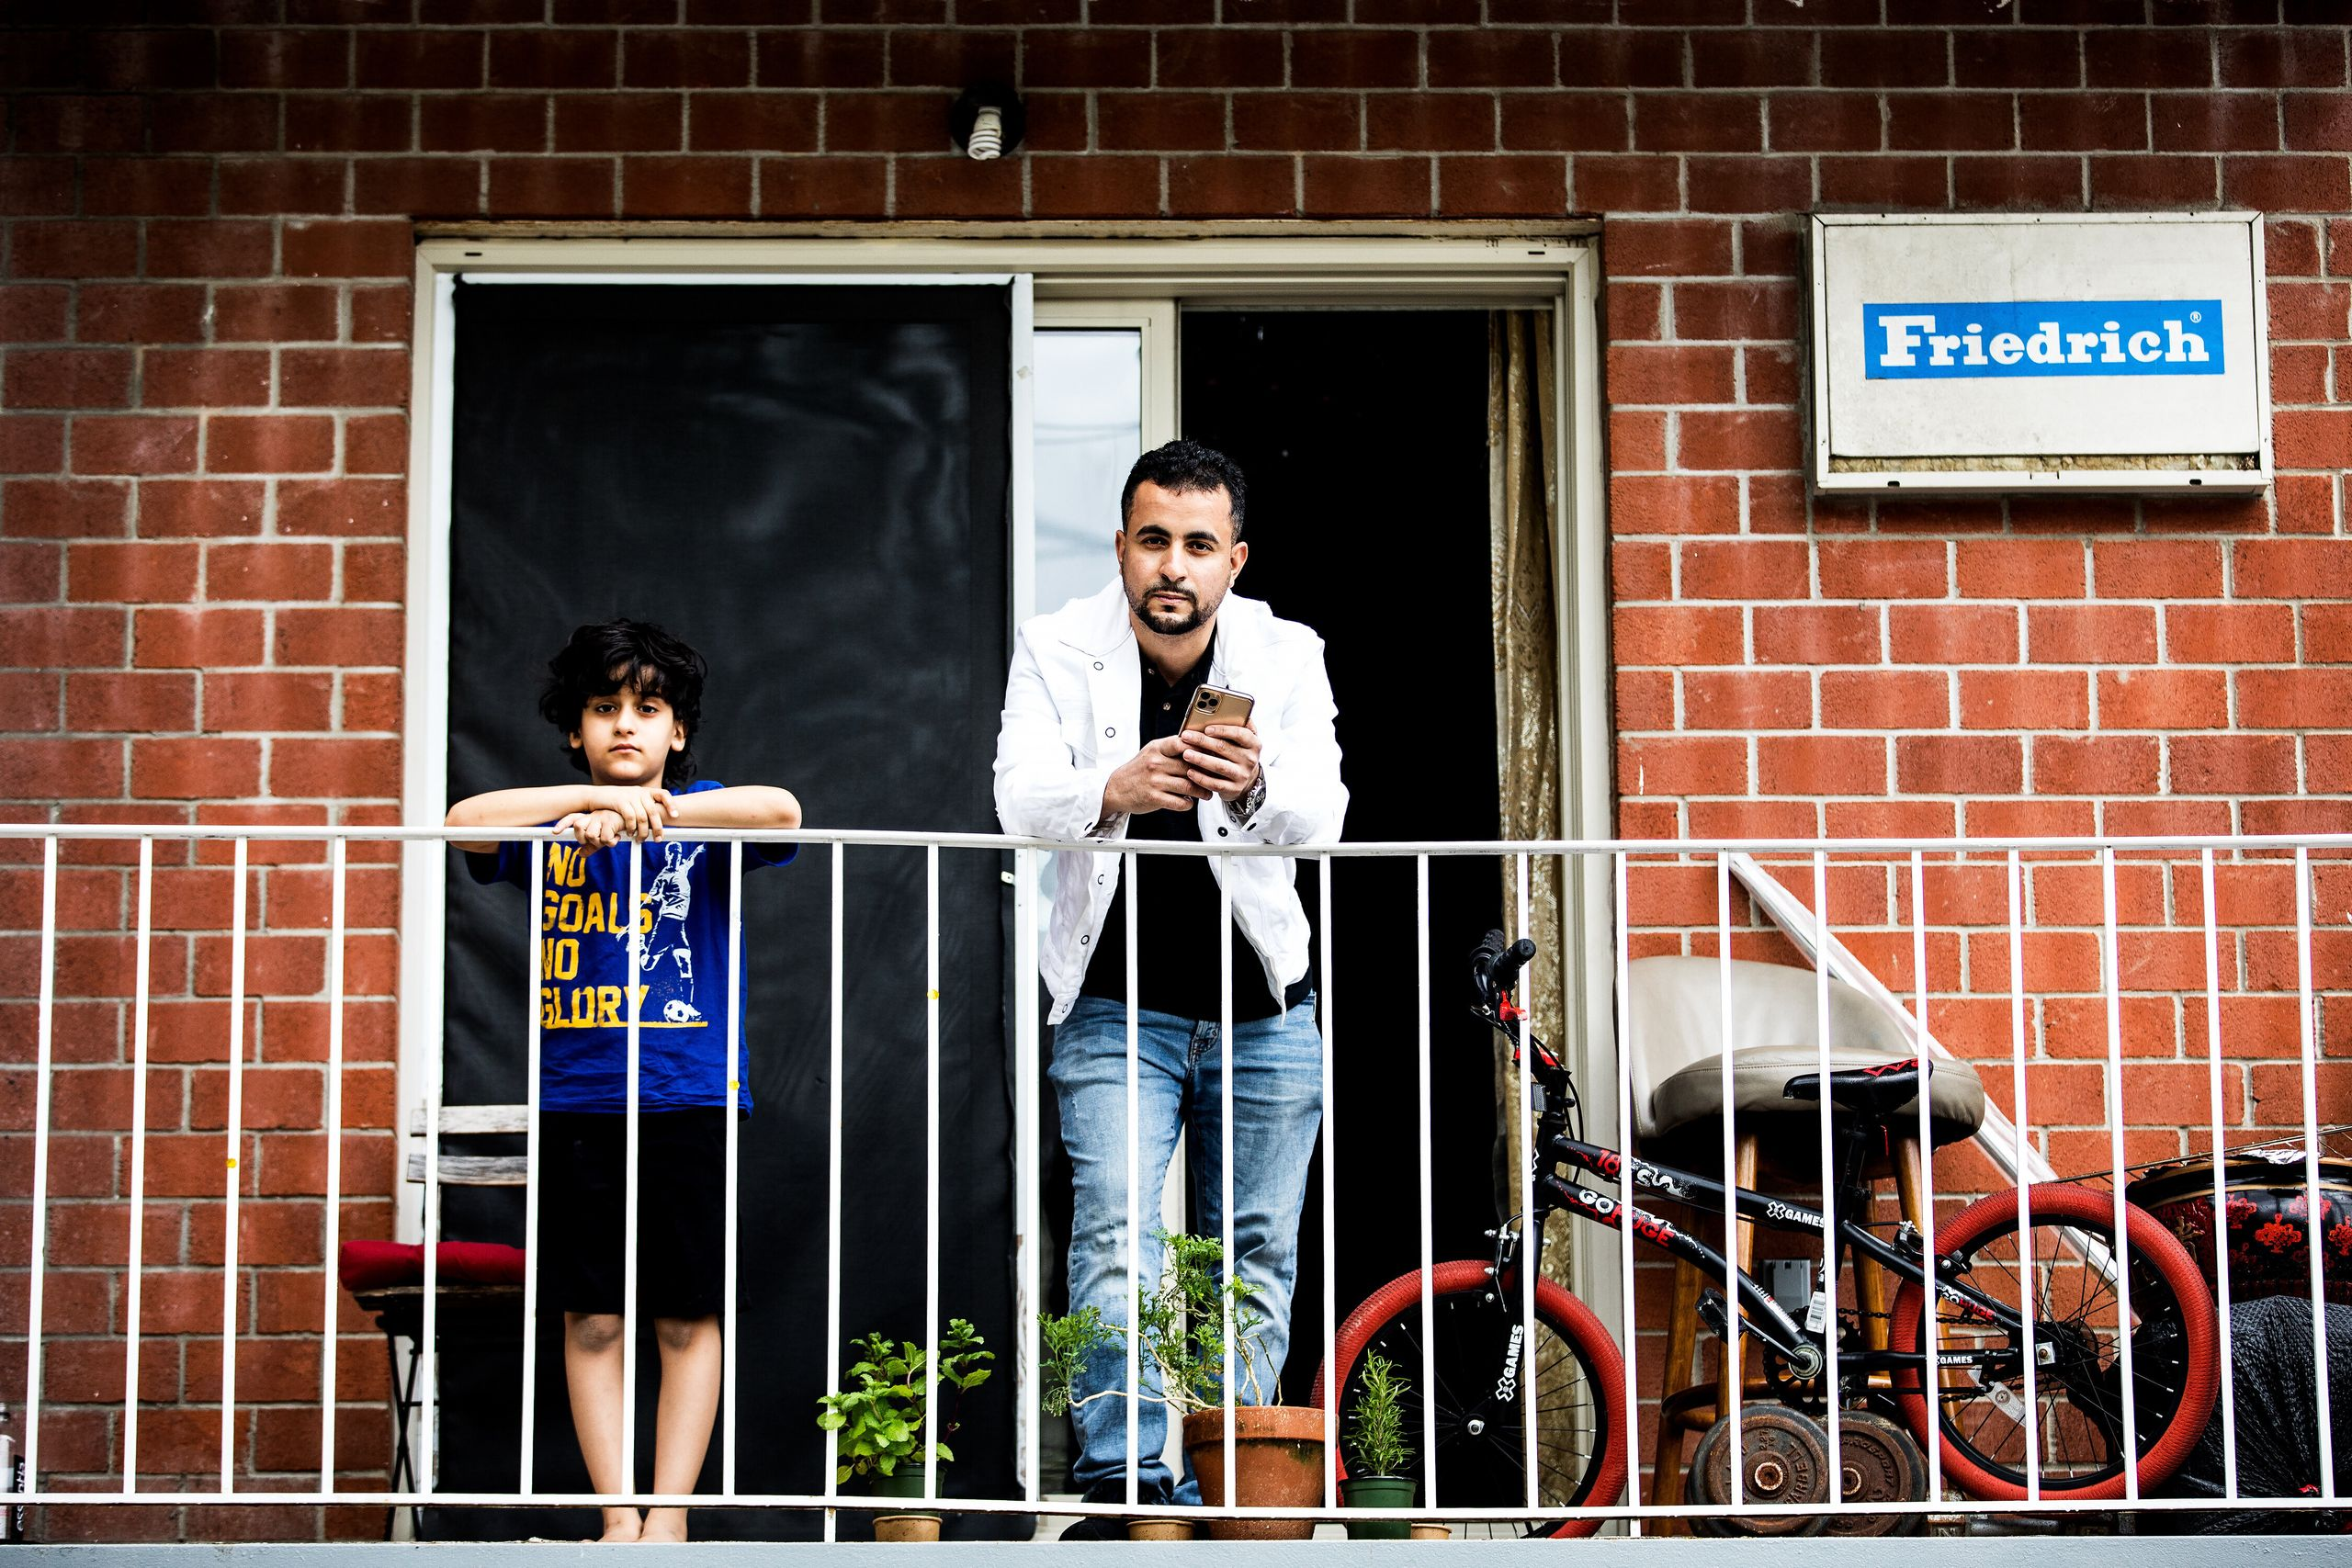 Abdullah, Emad Al-Azabi's cousin, stands with his nephew on the balcony of his home in Queens, New York City, in April.